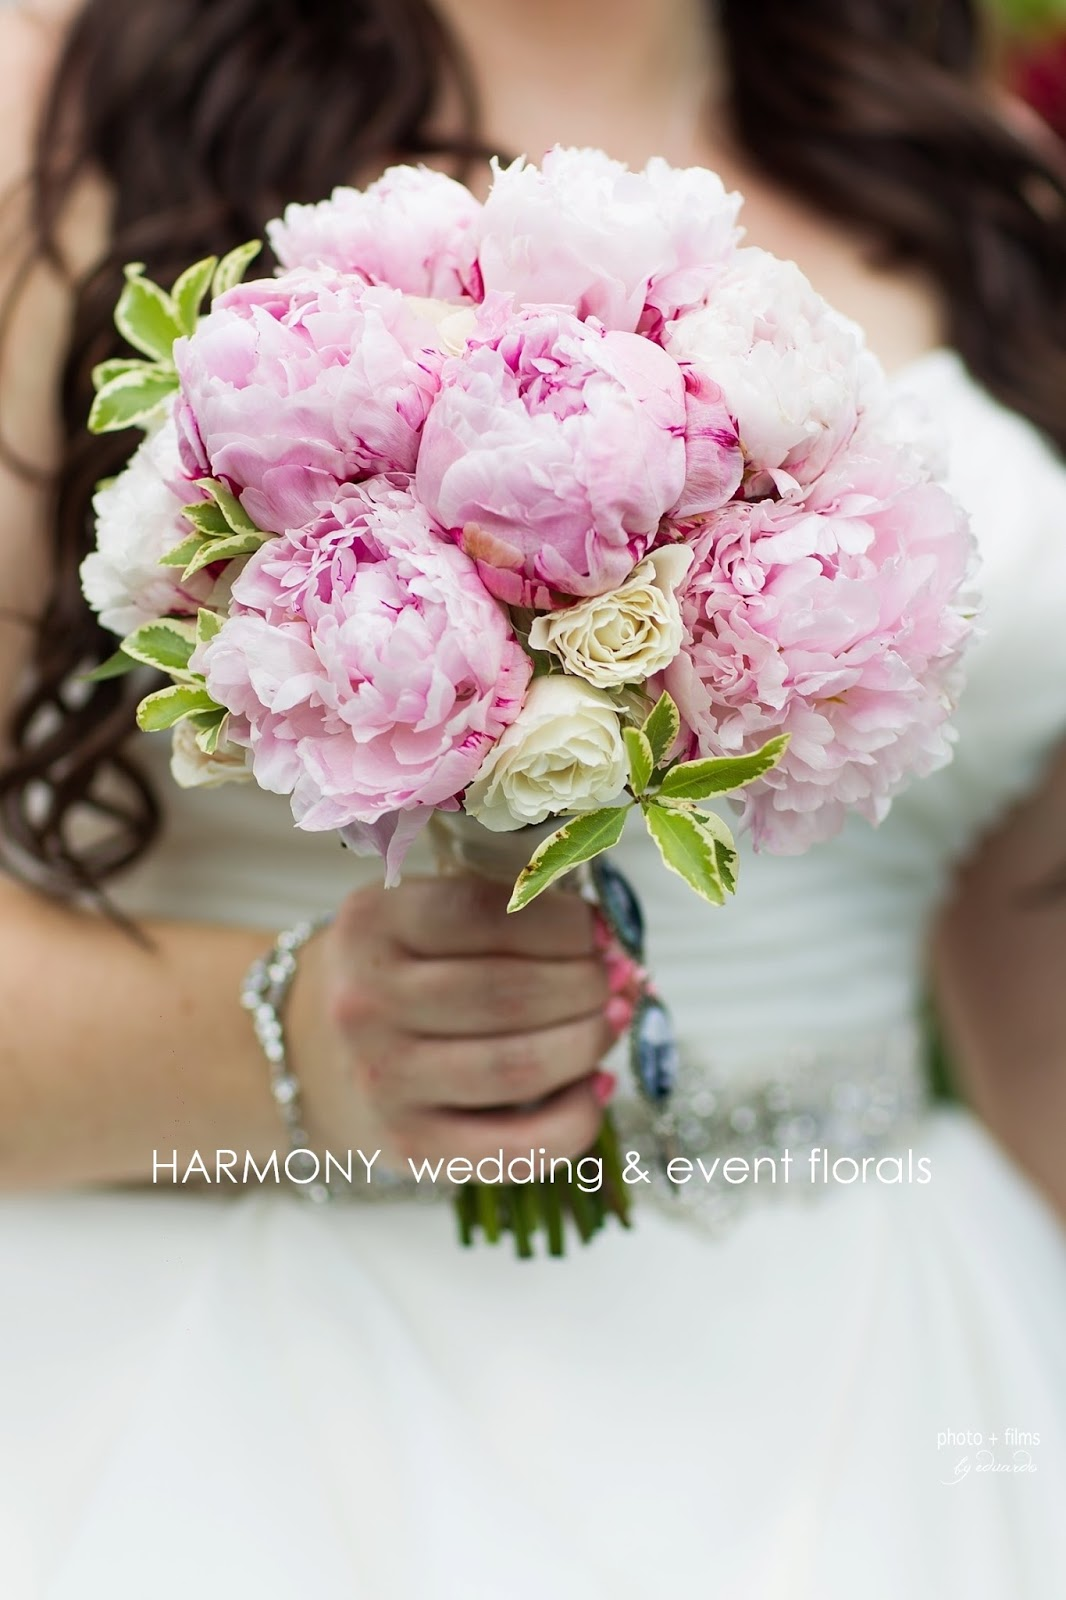 HARMONY wedding and event florals